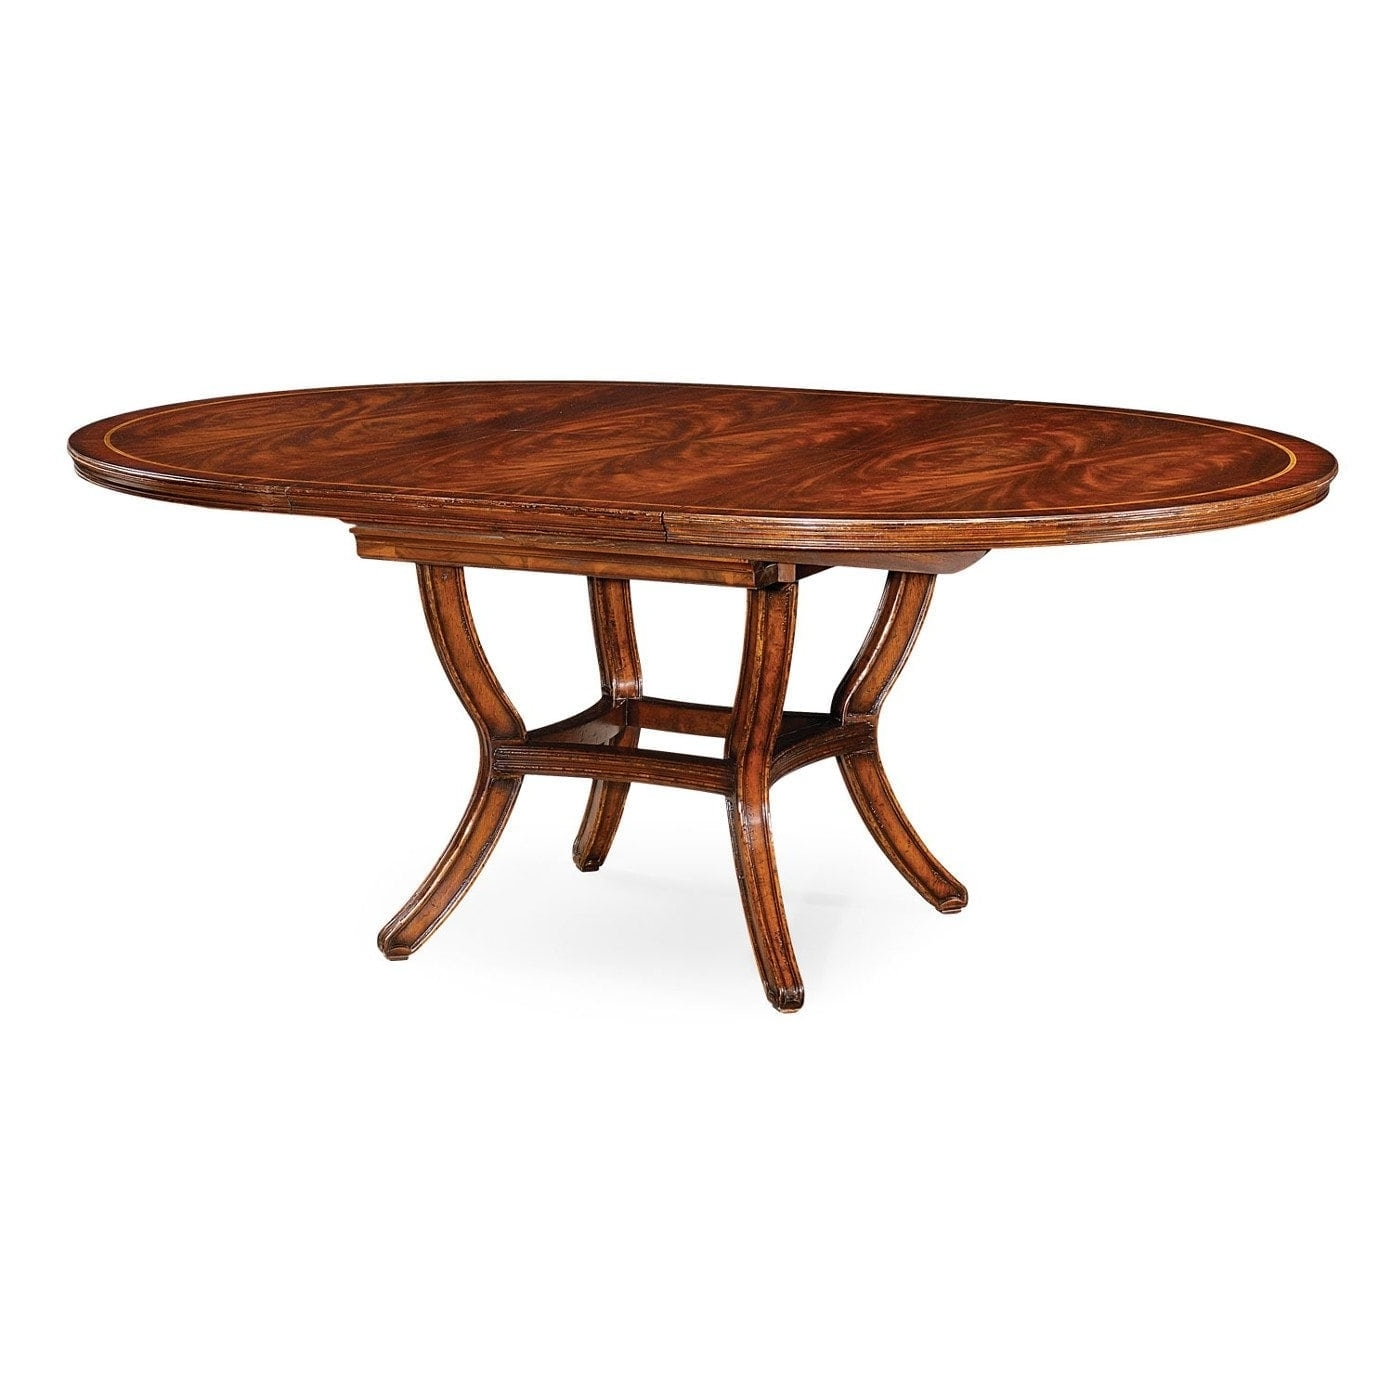 Round Dining Tables Extends To Oval For Favorite 54 Inch Round To Oval Table, Extends With Self Storing Leaf (View 16 of 25)